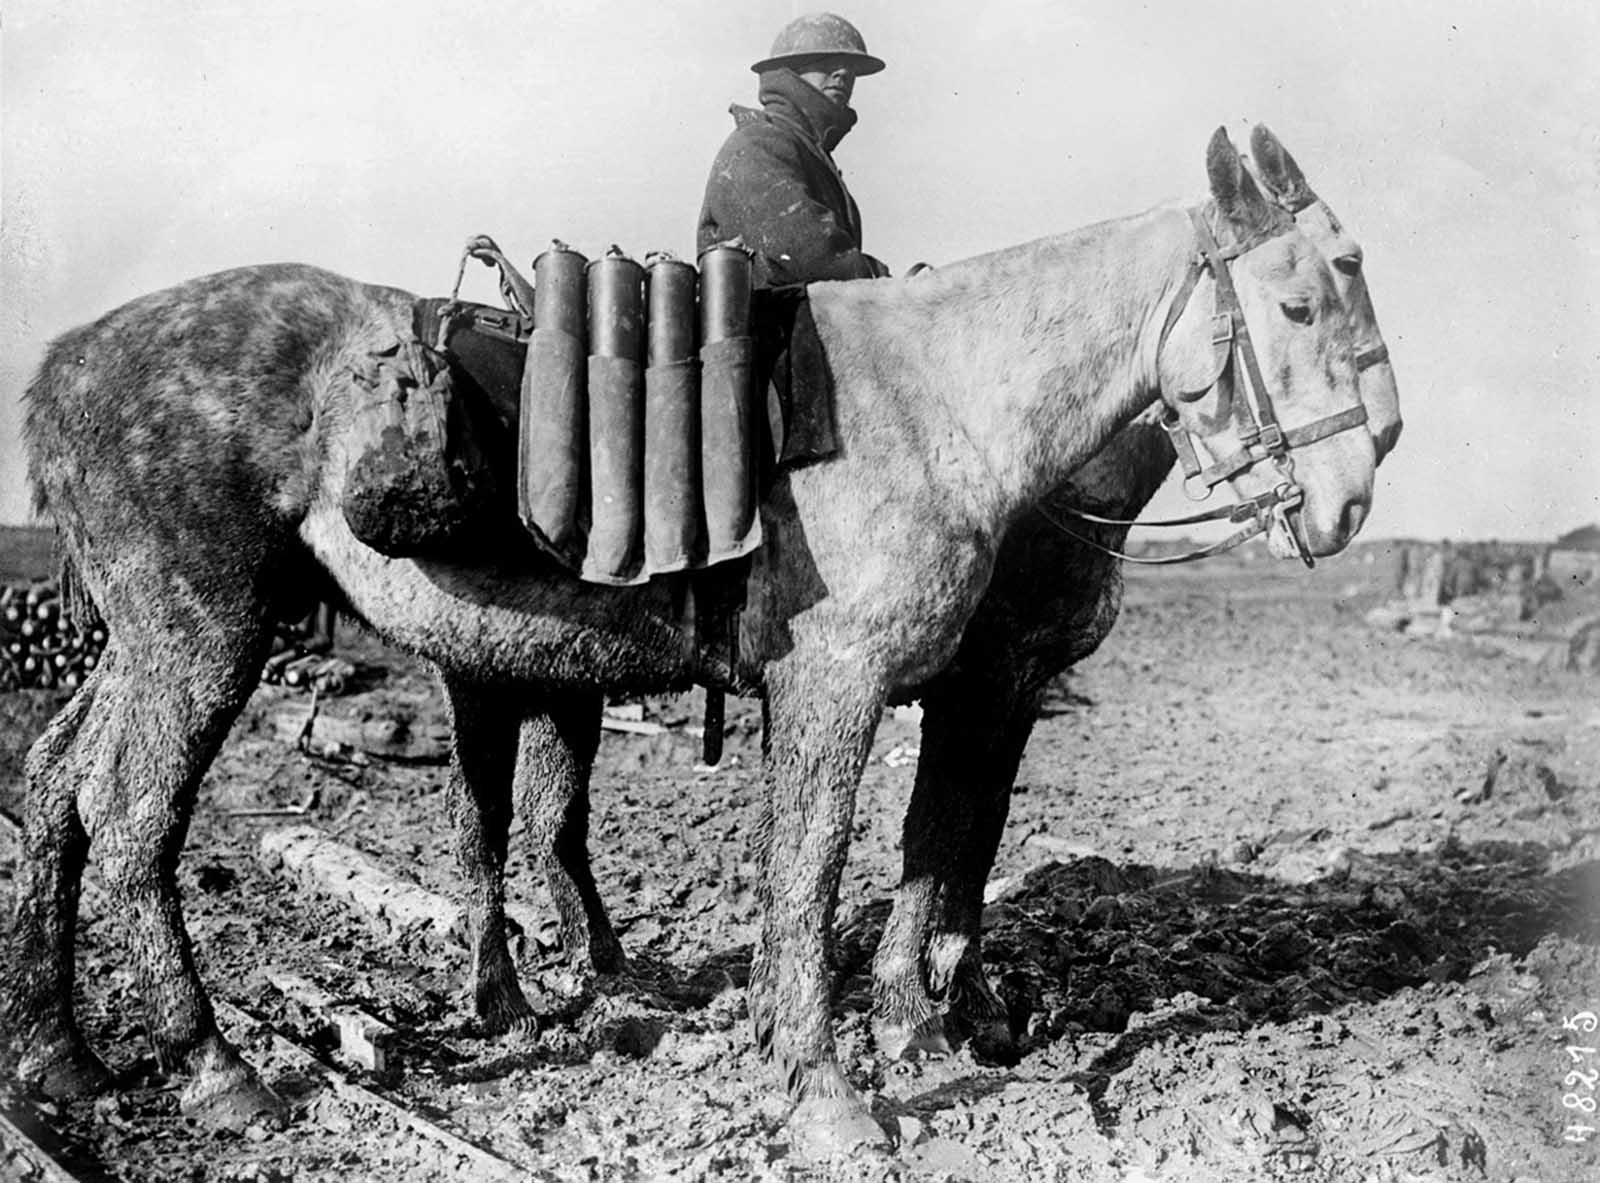 Western Front, shells carried on horseback, 1916.